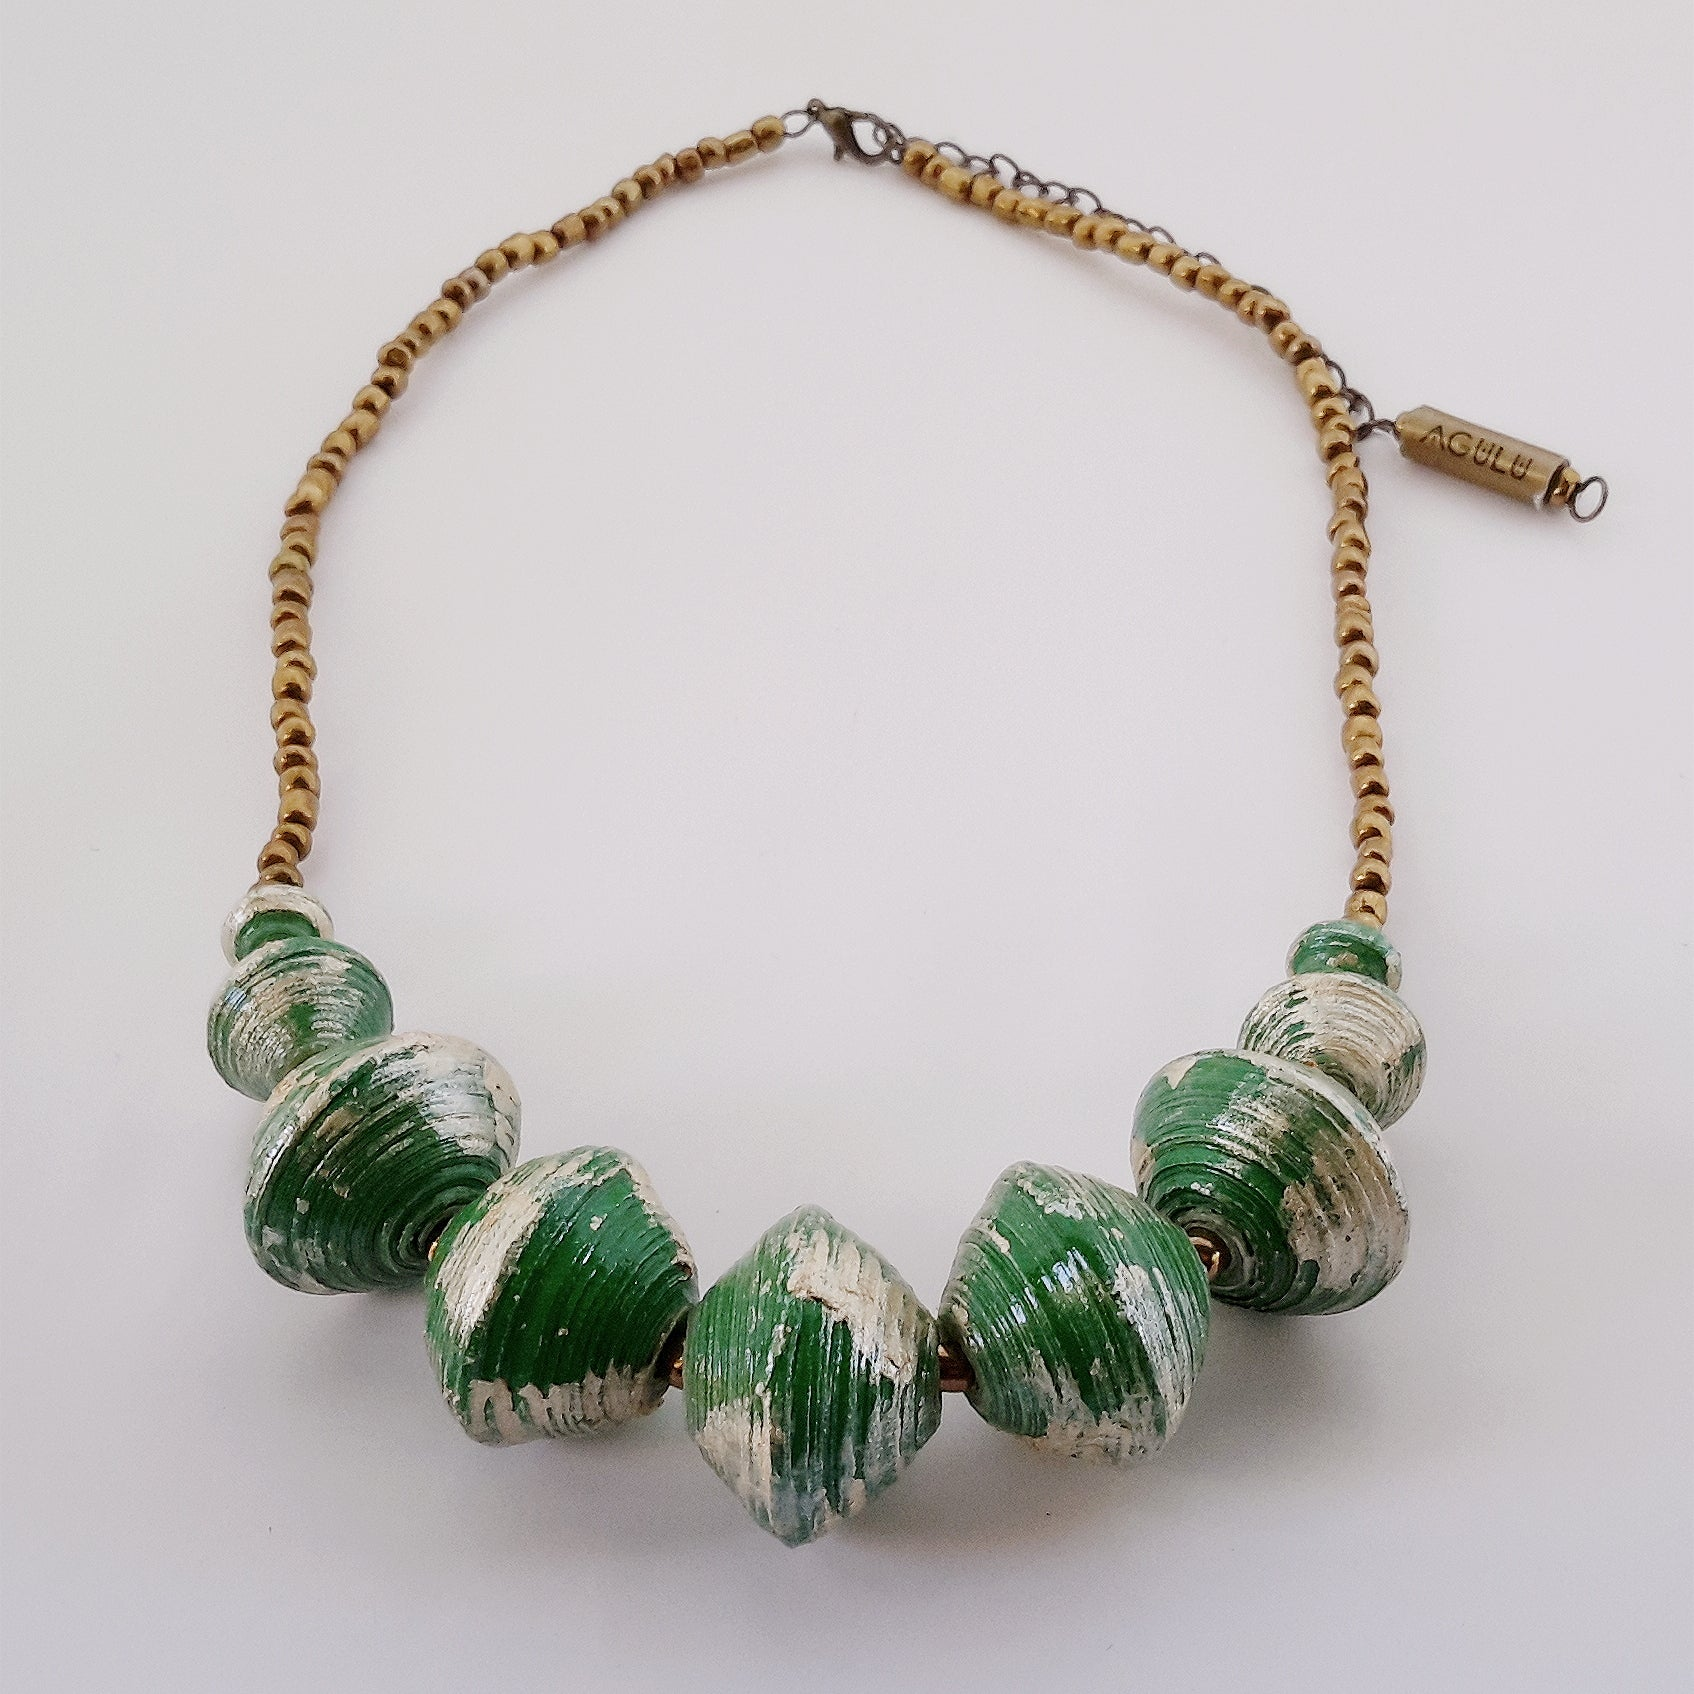 Green hand made ethical design paper bead necklace made out of recycled paper in Uganda by principles of fair trade, ethical and sustainable fashion, empowering women of post war area, by Finnish / Scandinavian brand, Agulu Paper Beads. Eettinen vihreä käsintehty design kaulakoru, joka on tehty kierrätyspaperista reilun kaupan periaattein työllistämällä Ugandalaisia nasia.